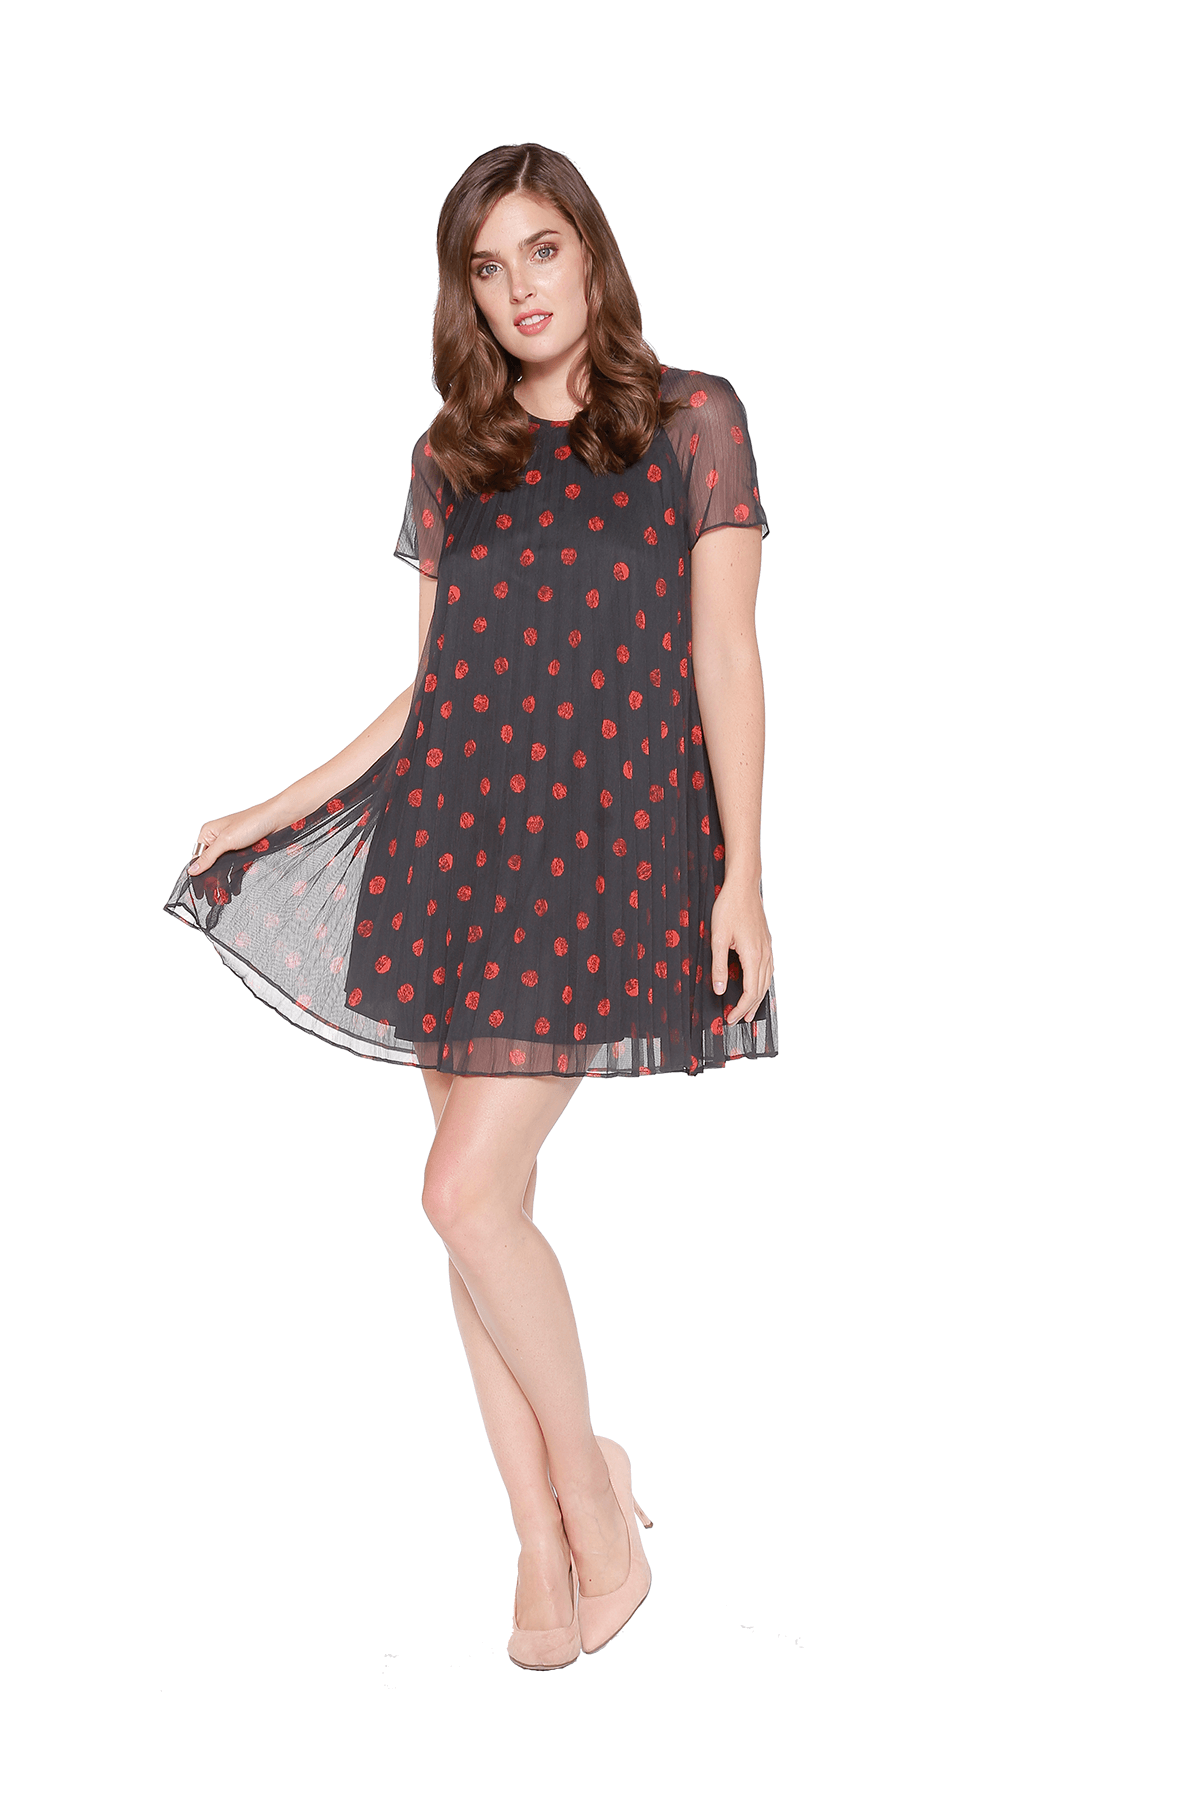 Eva Franco Dress Widow Dress - Chester Dot